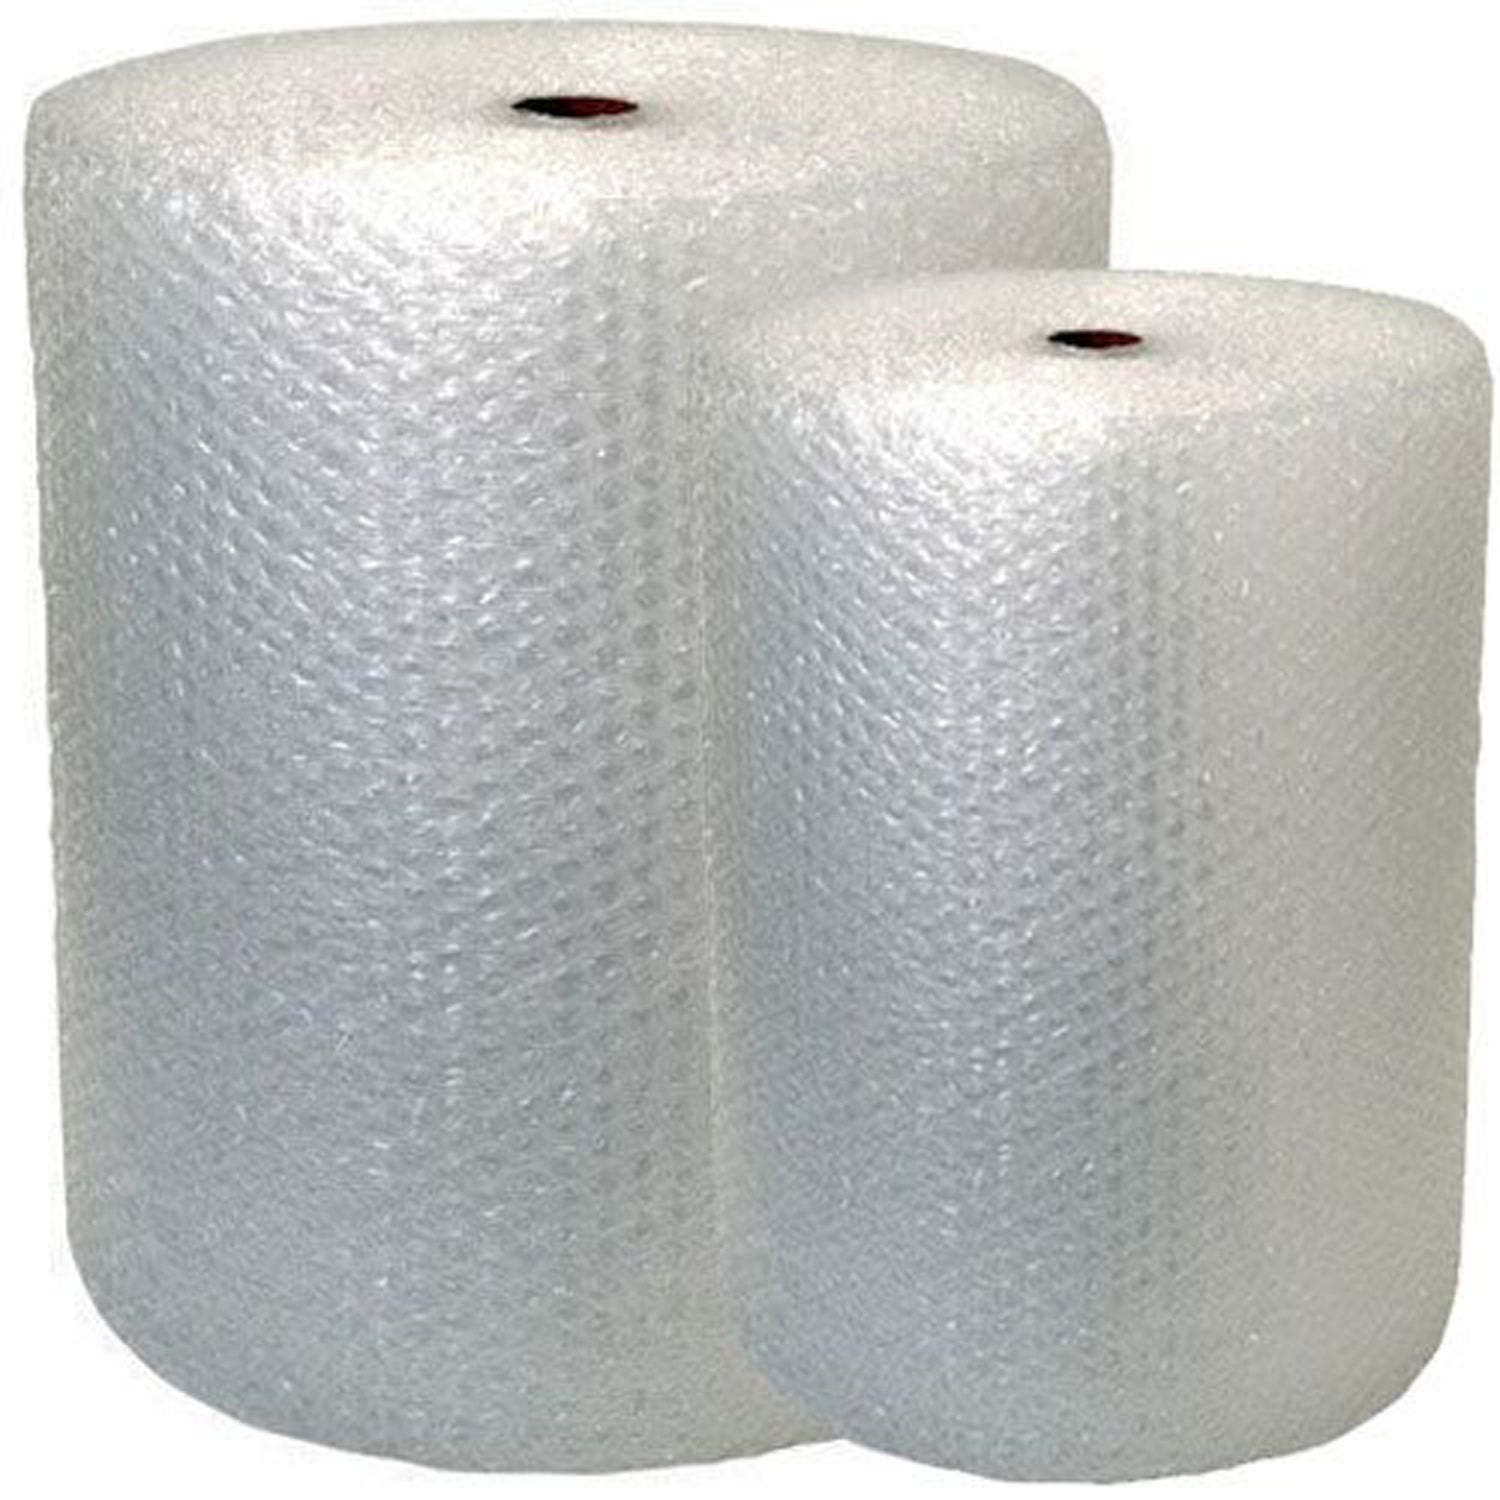 Bubble_Wrap_250_gauge